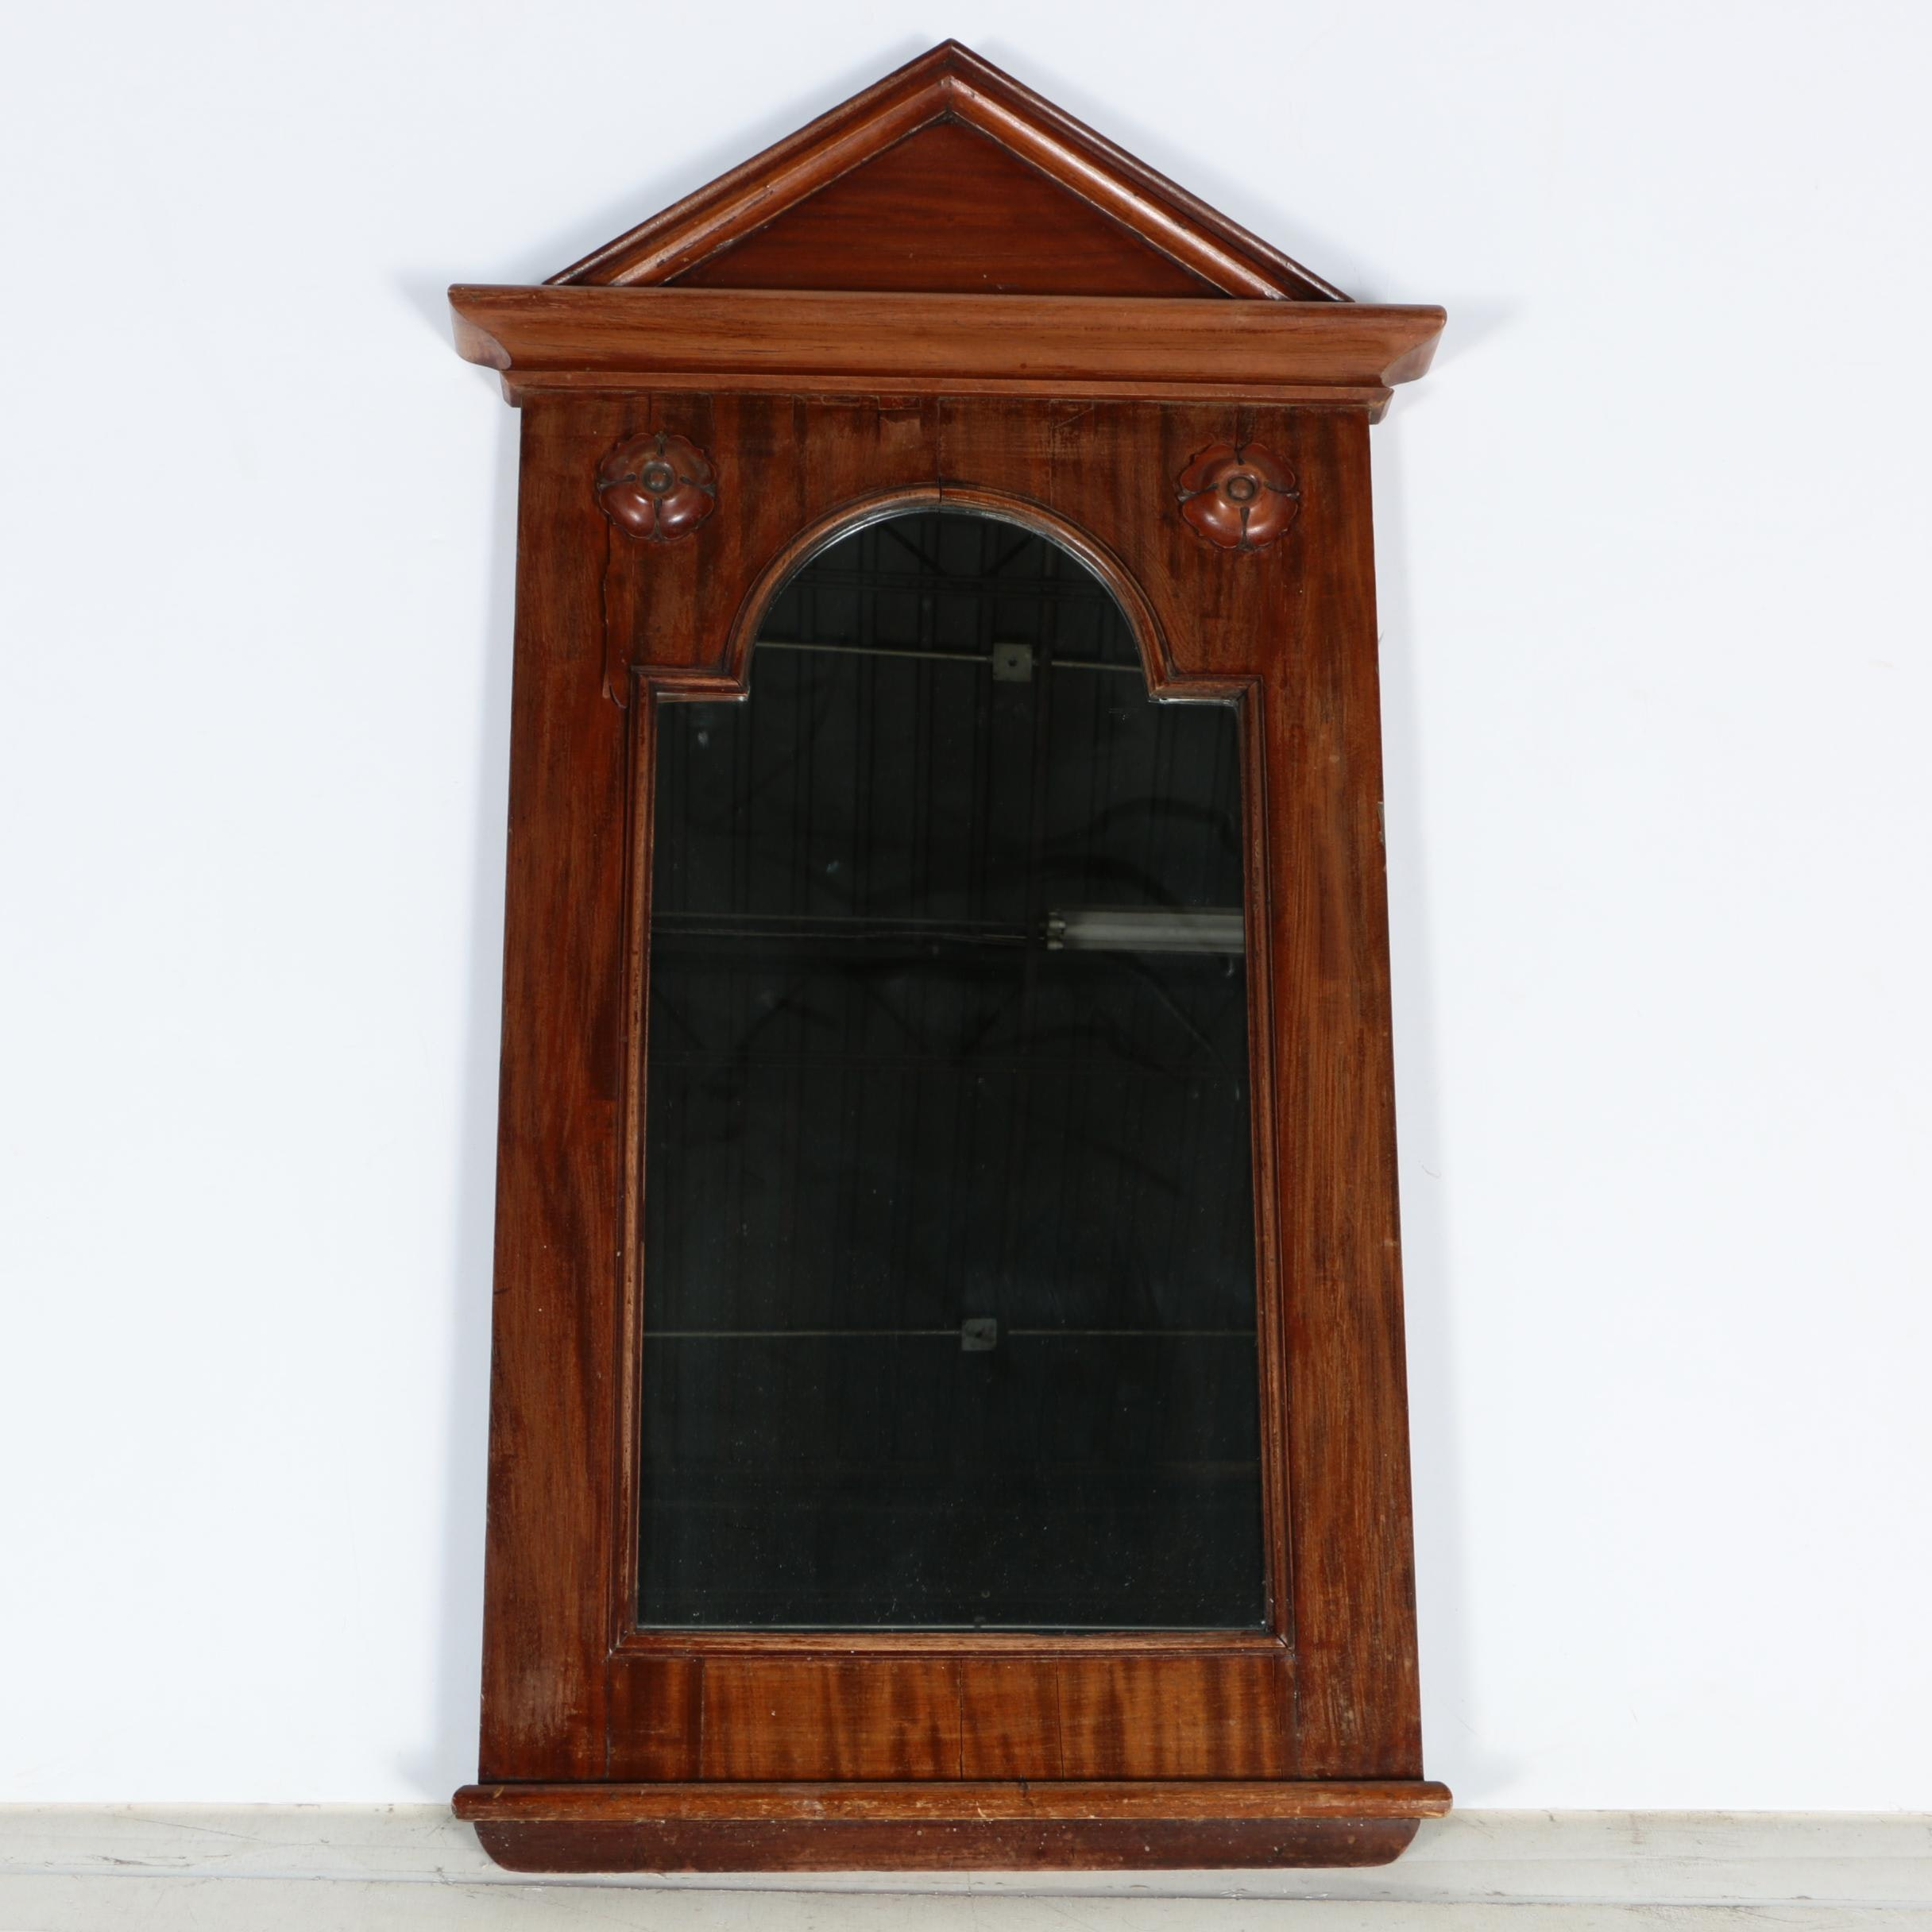 Wood Framed Wall Mirror with Arched Top